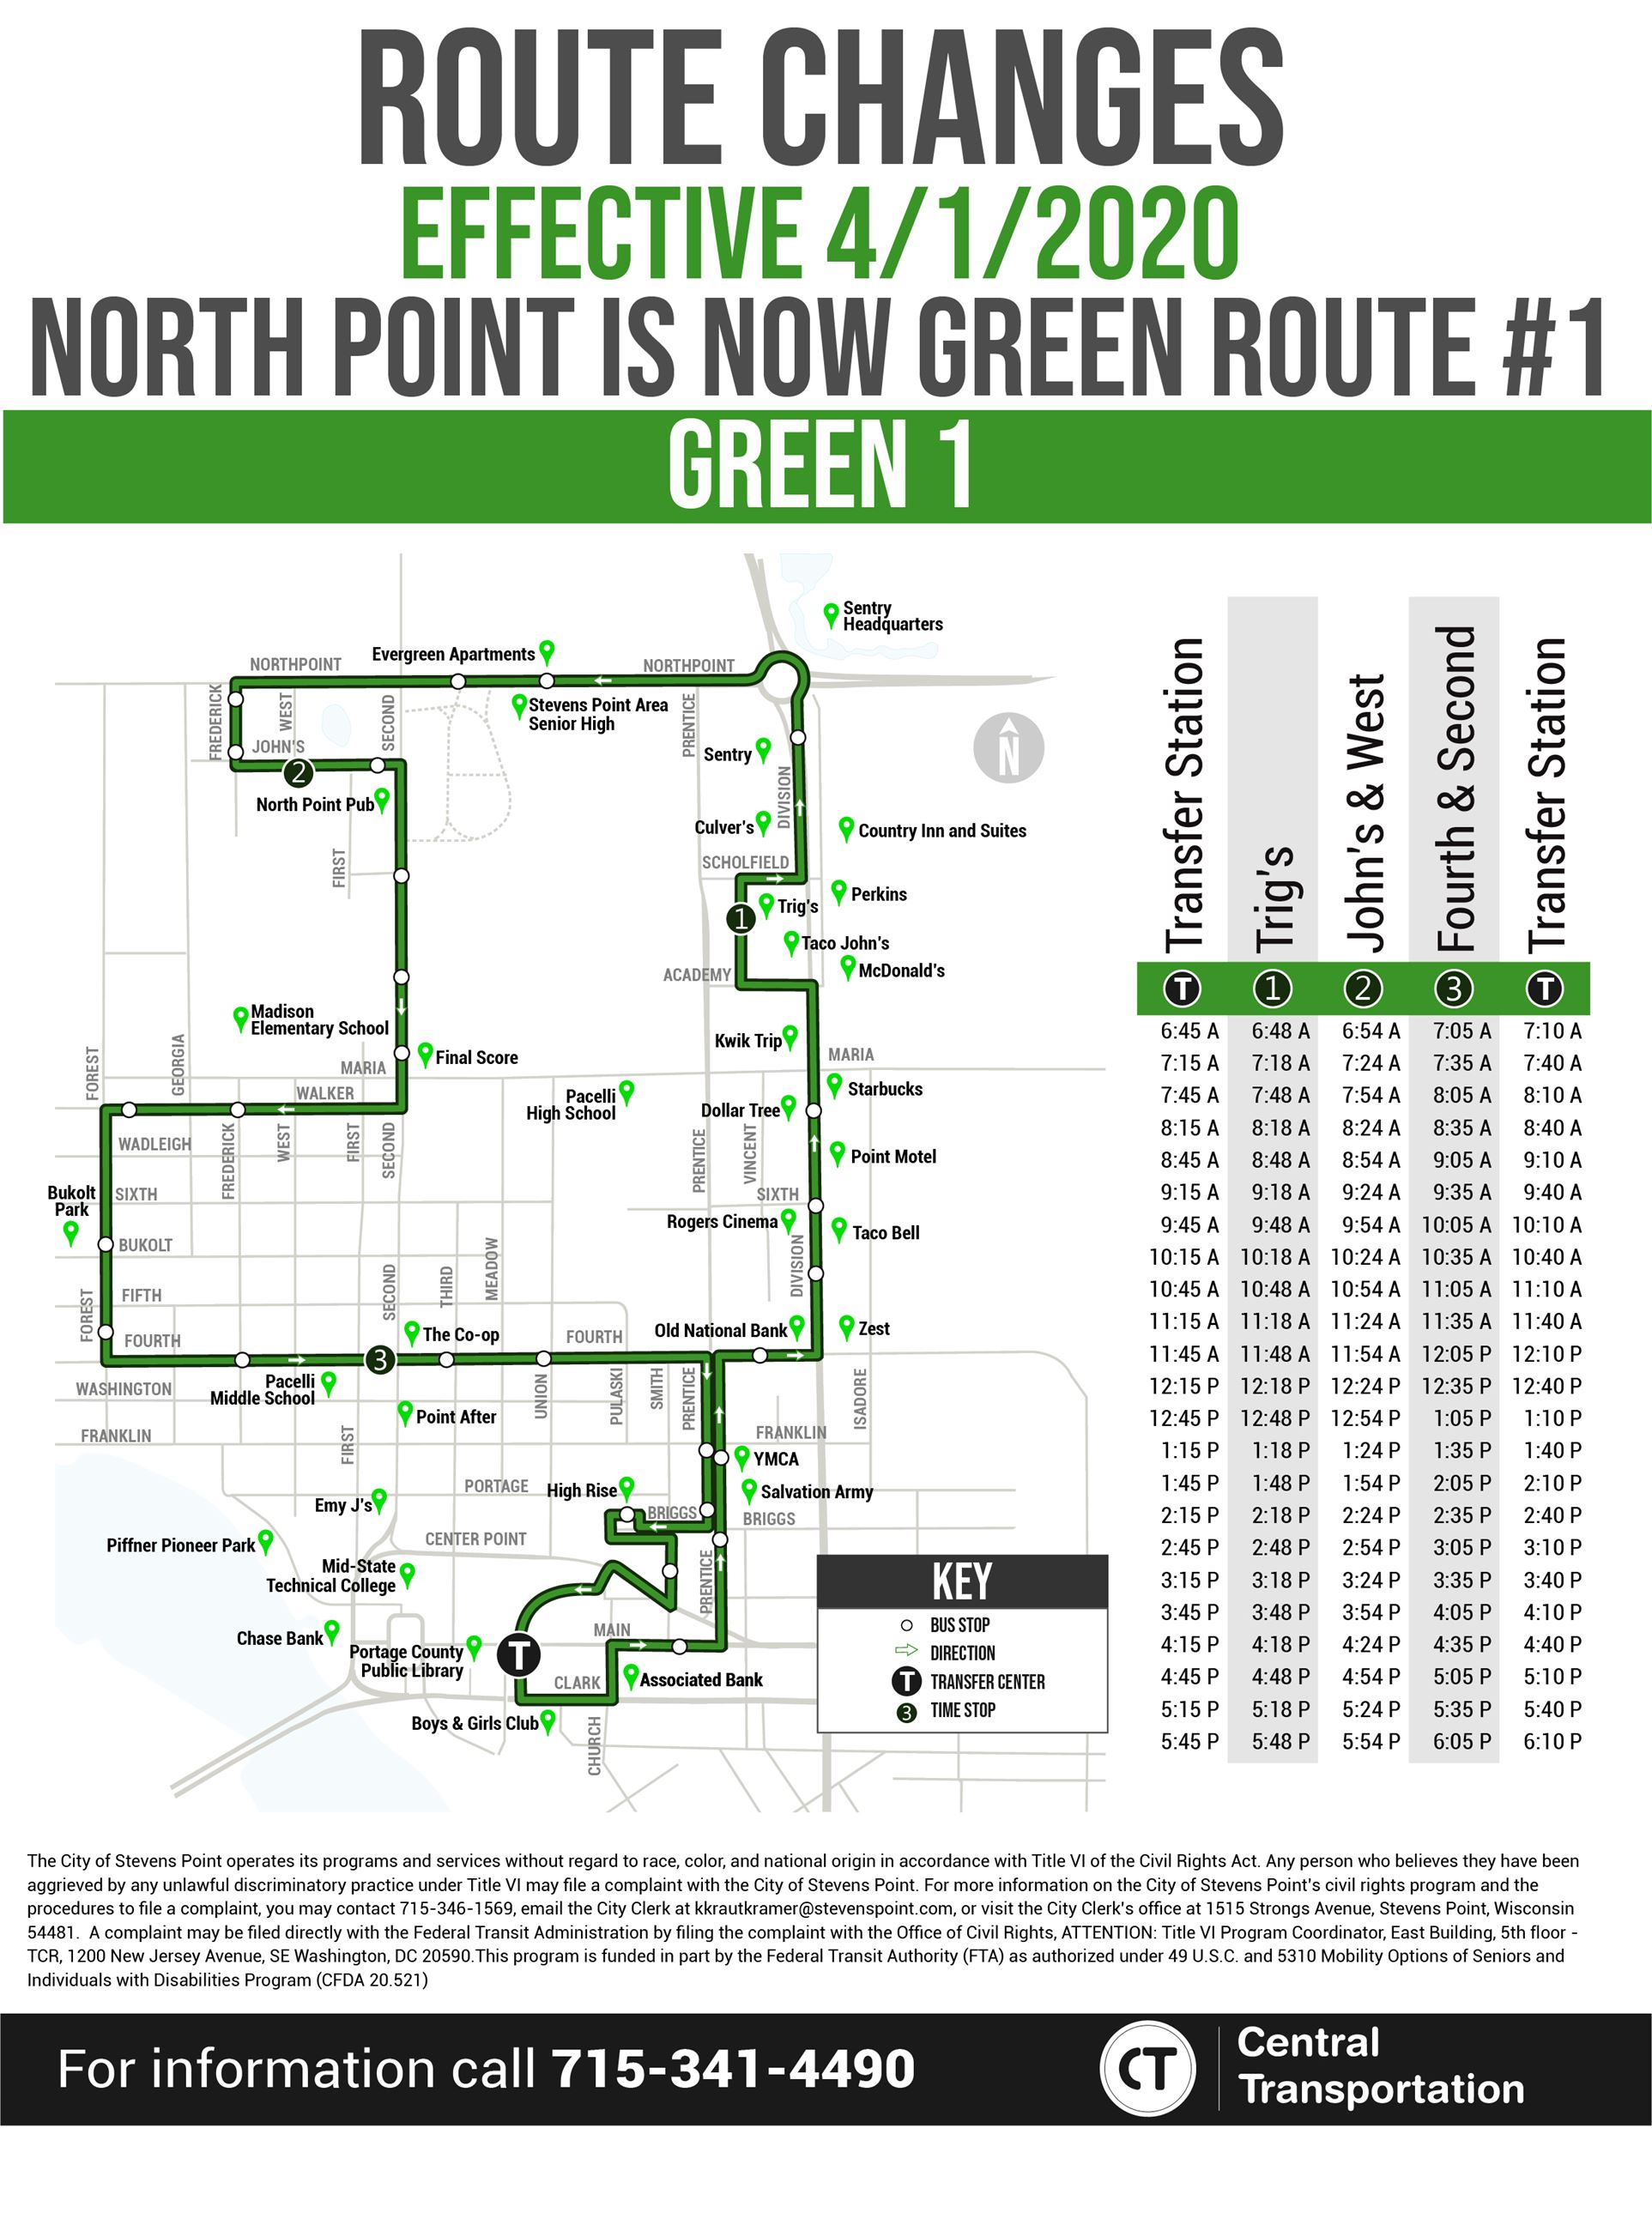 North Point Green Route 1 Changes